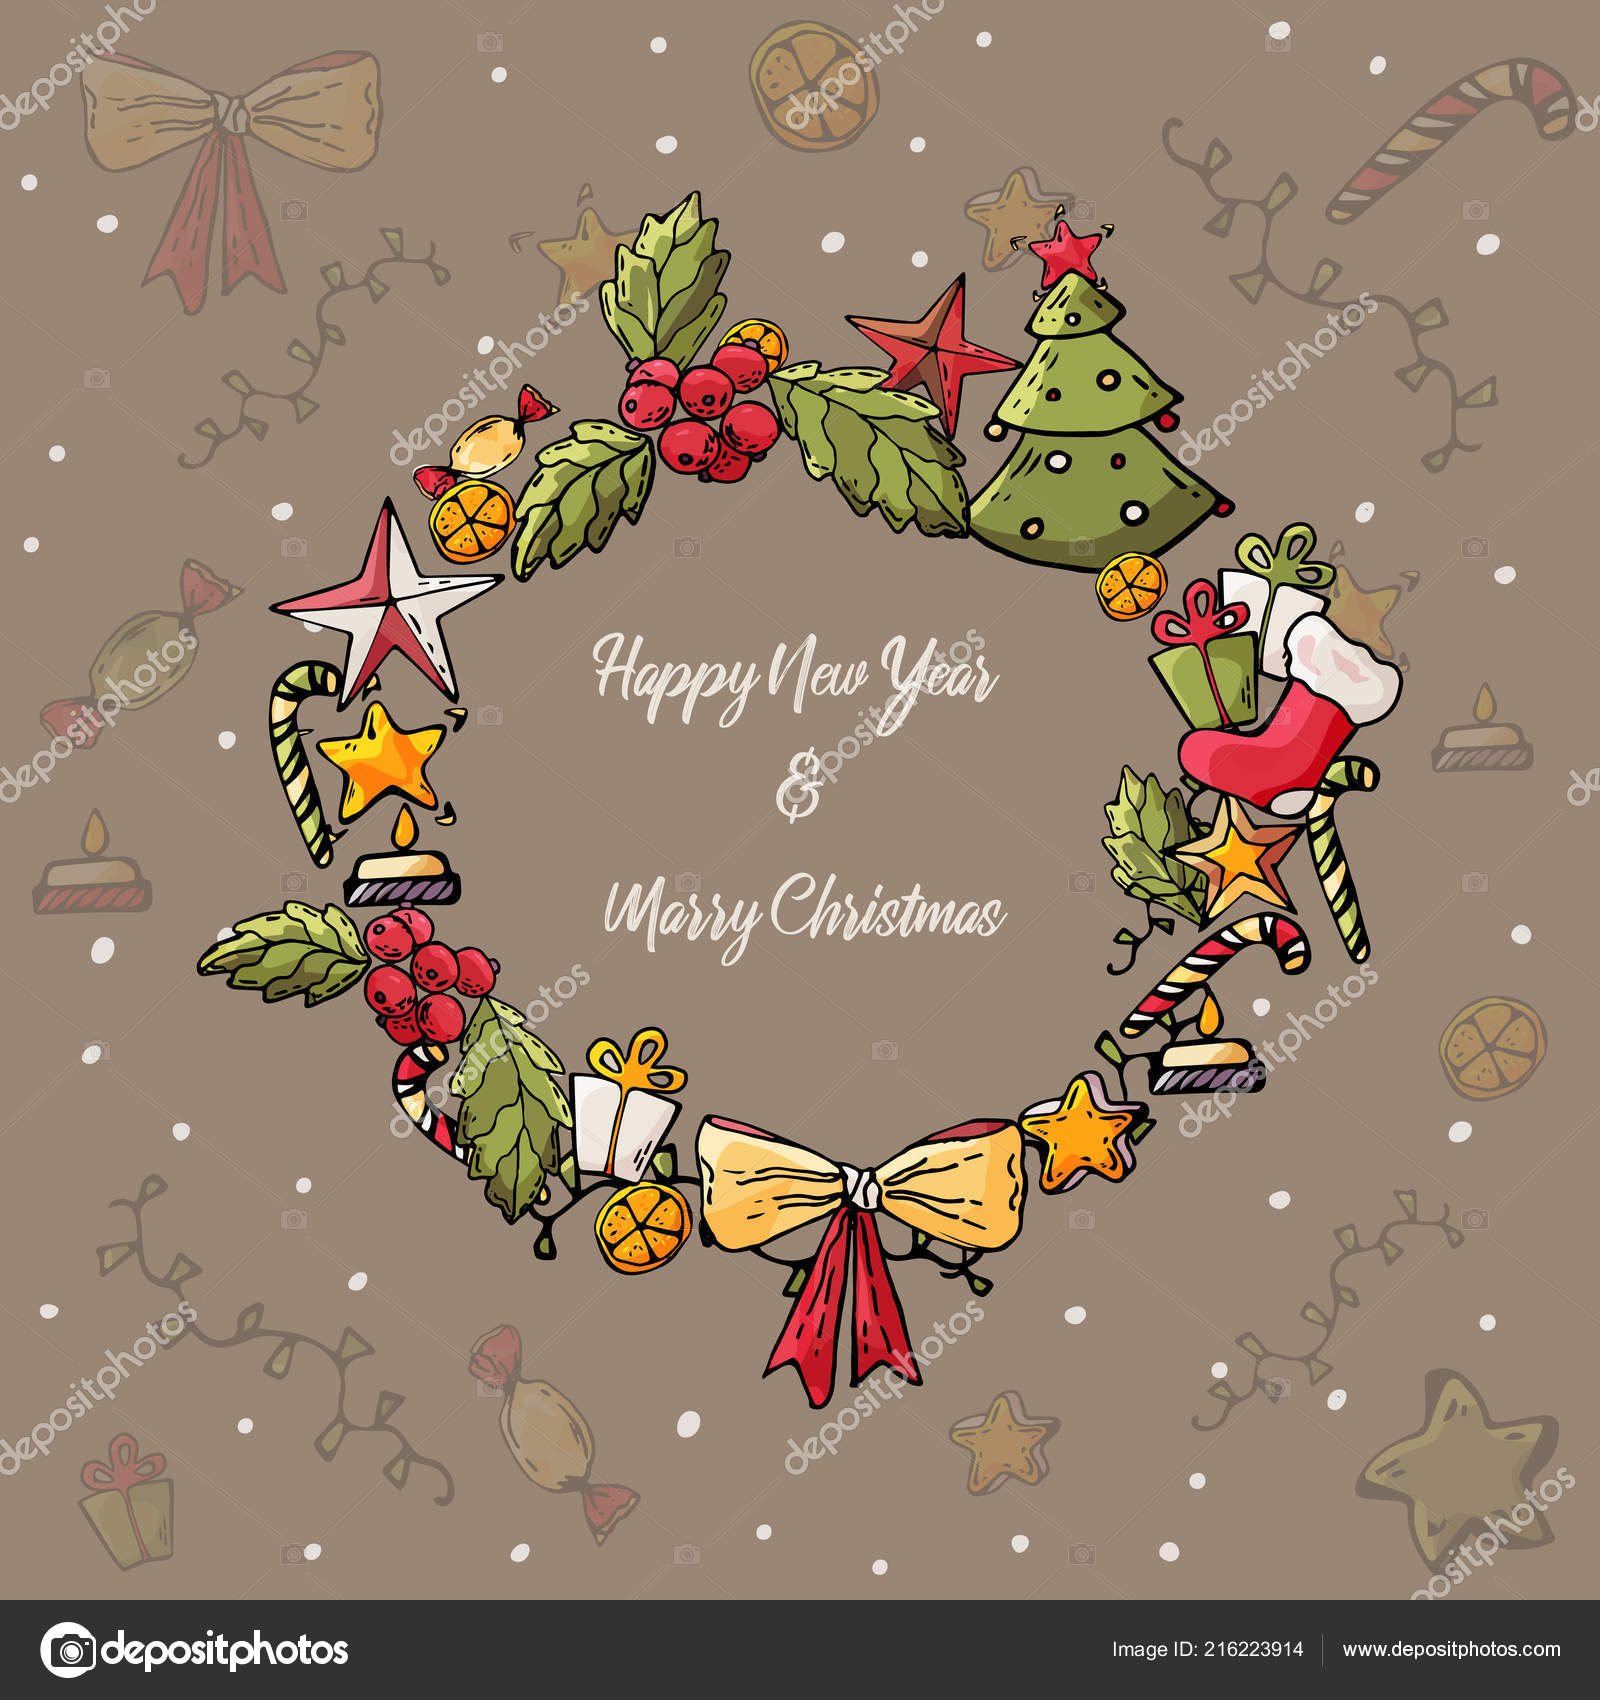 merry christmas and happy new year card christmas wreath with tree bow gift